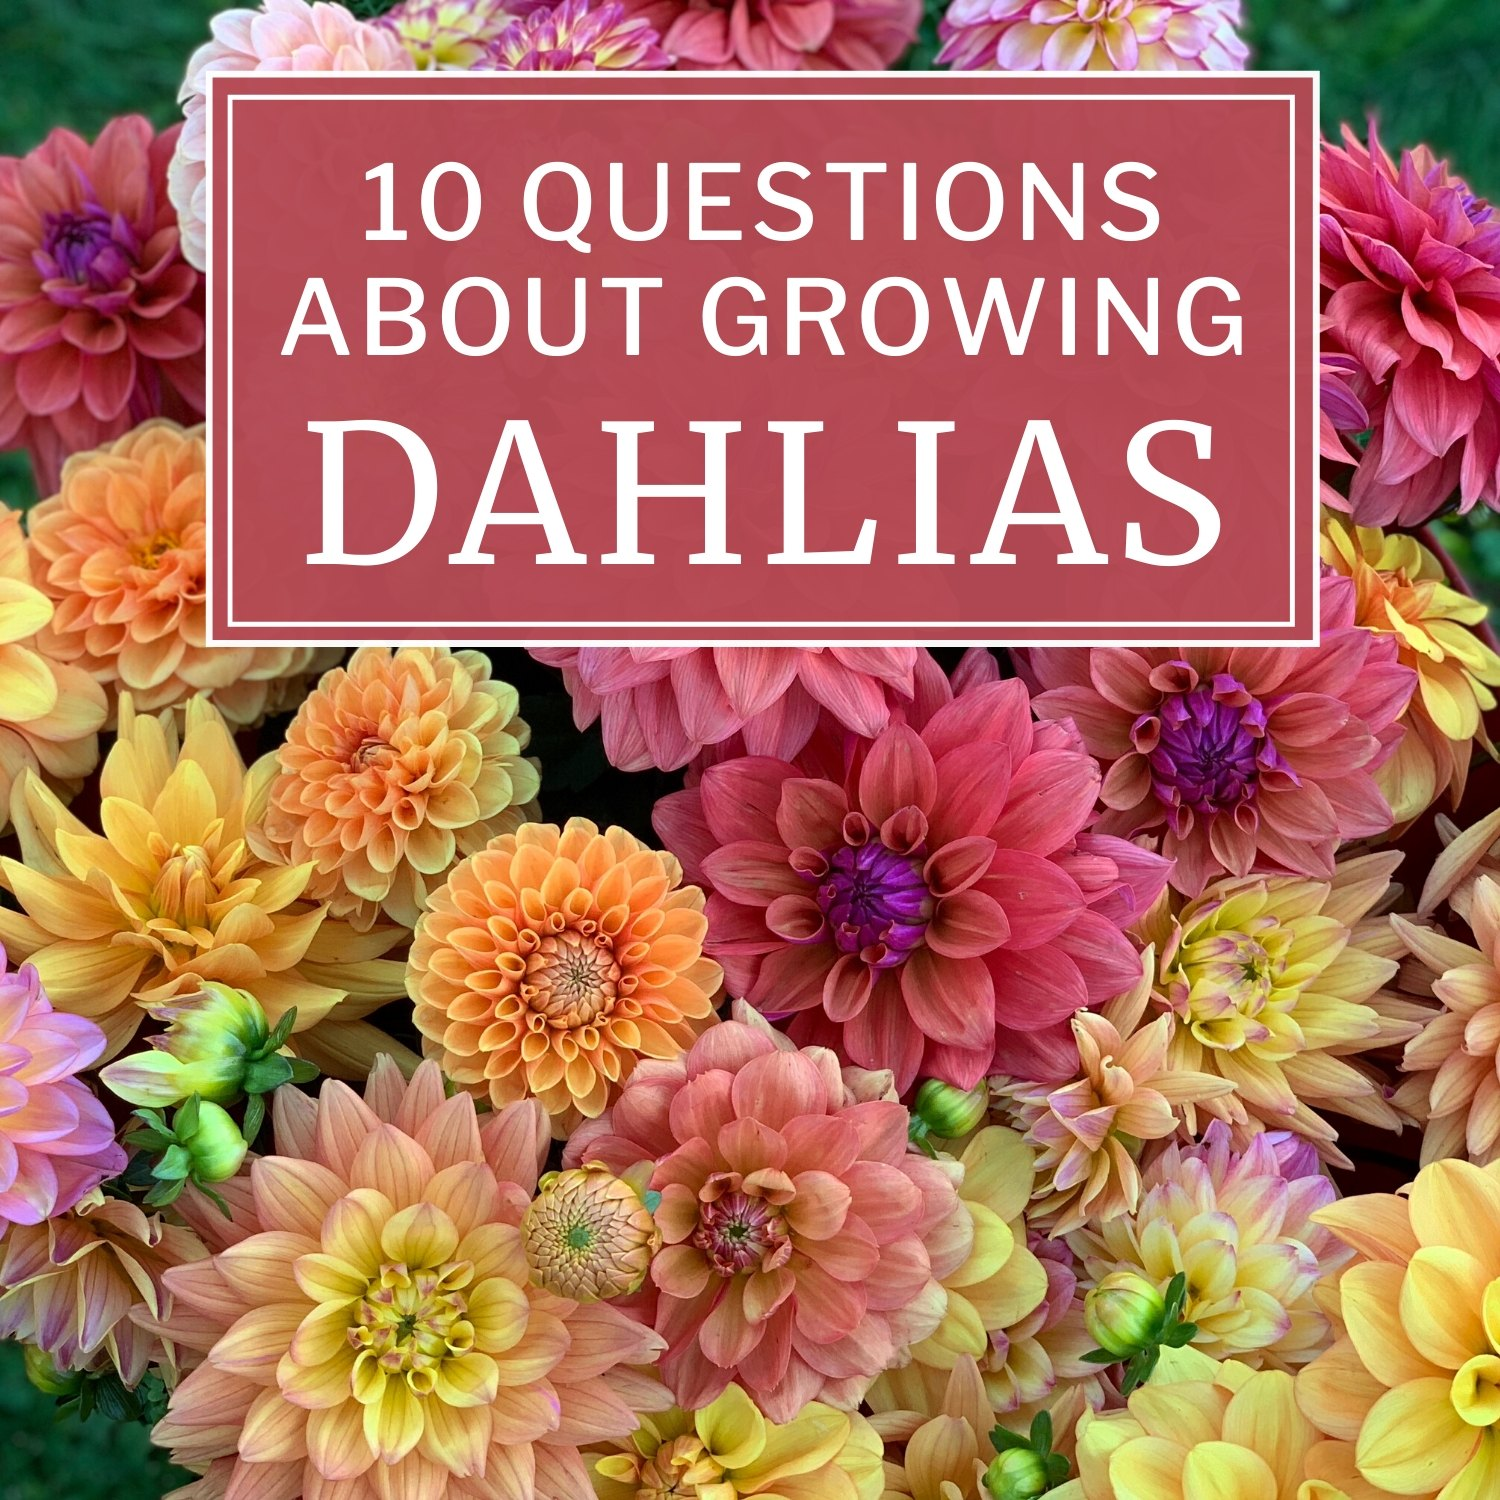 10 Questions About Growing Dahlias - Longfield Gardens